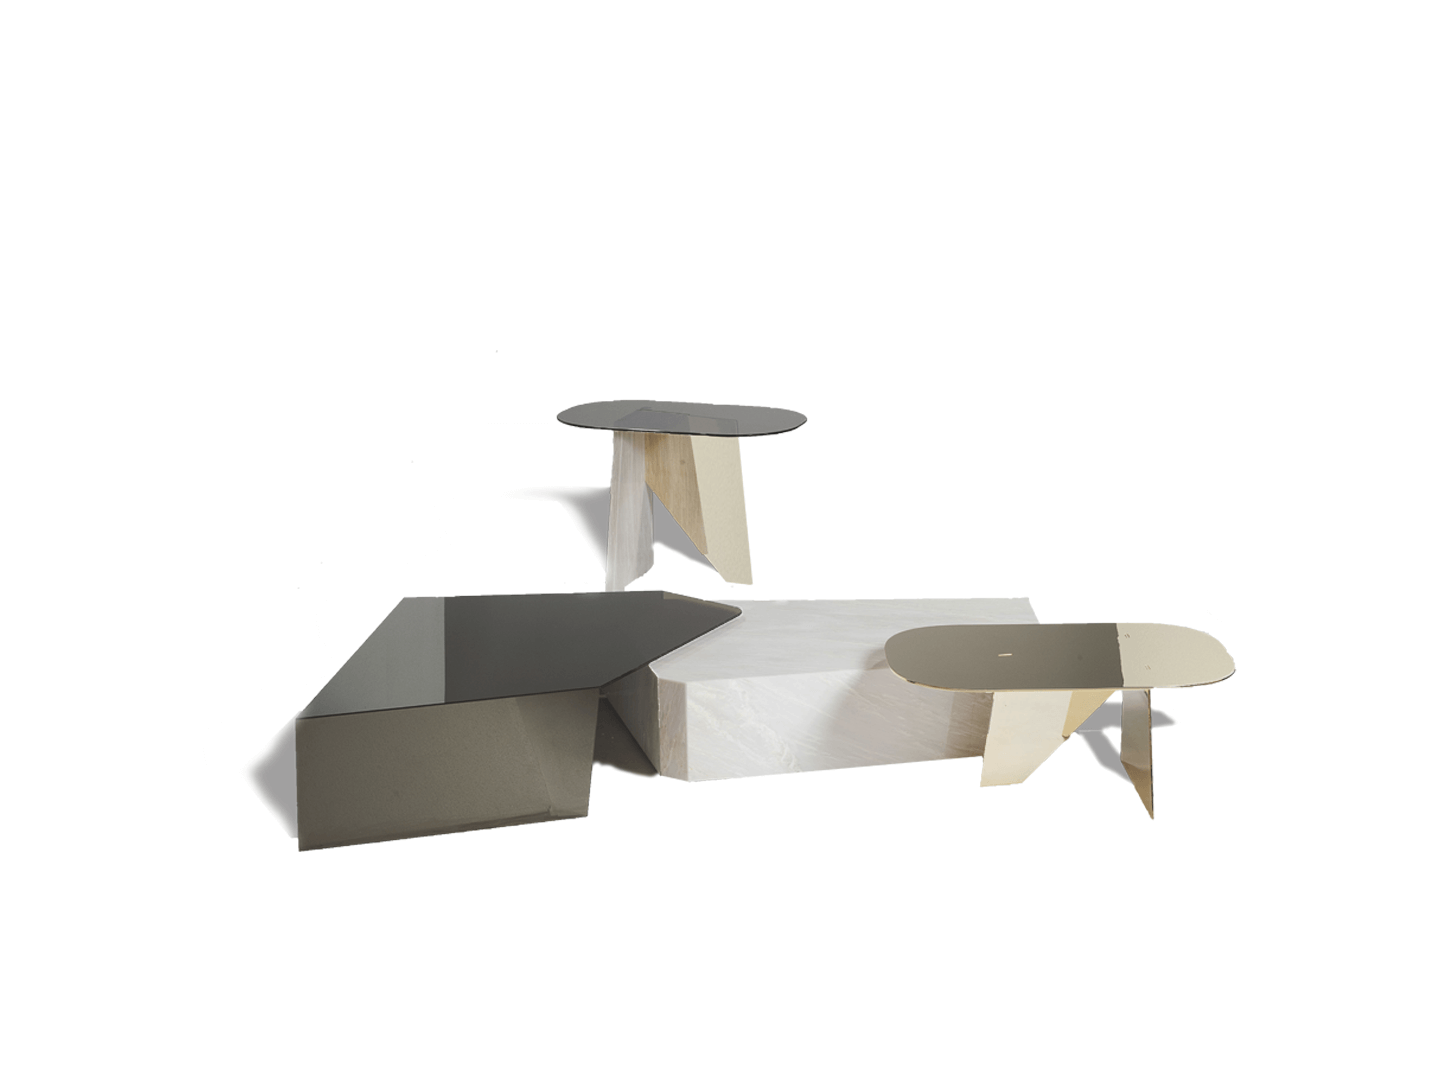 Imperfect coffee table